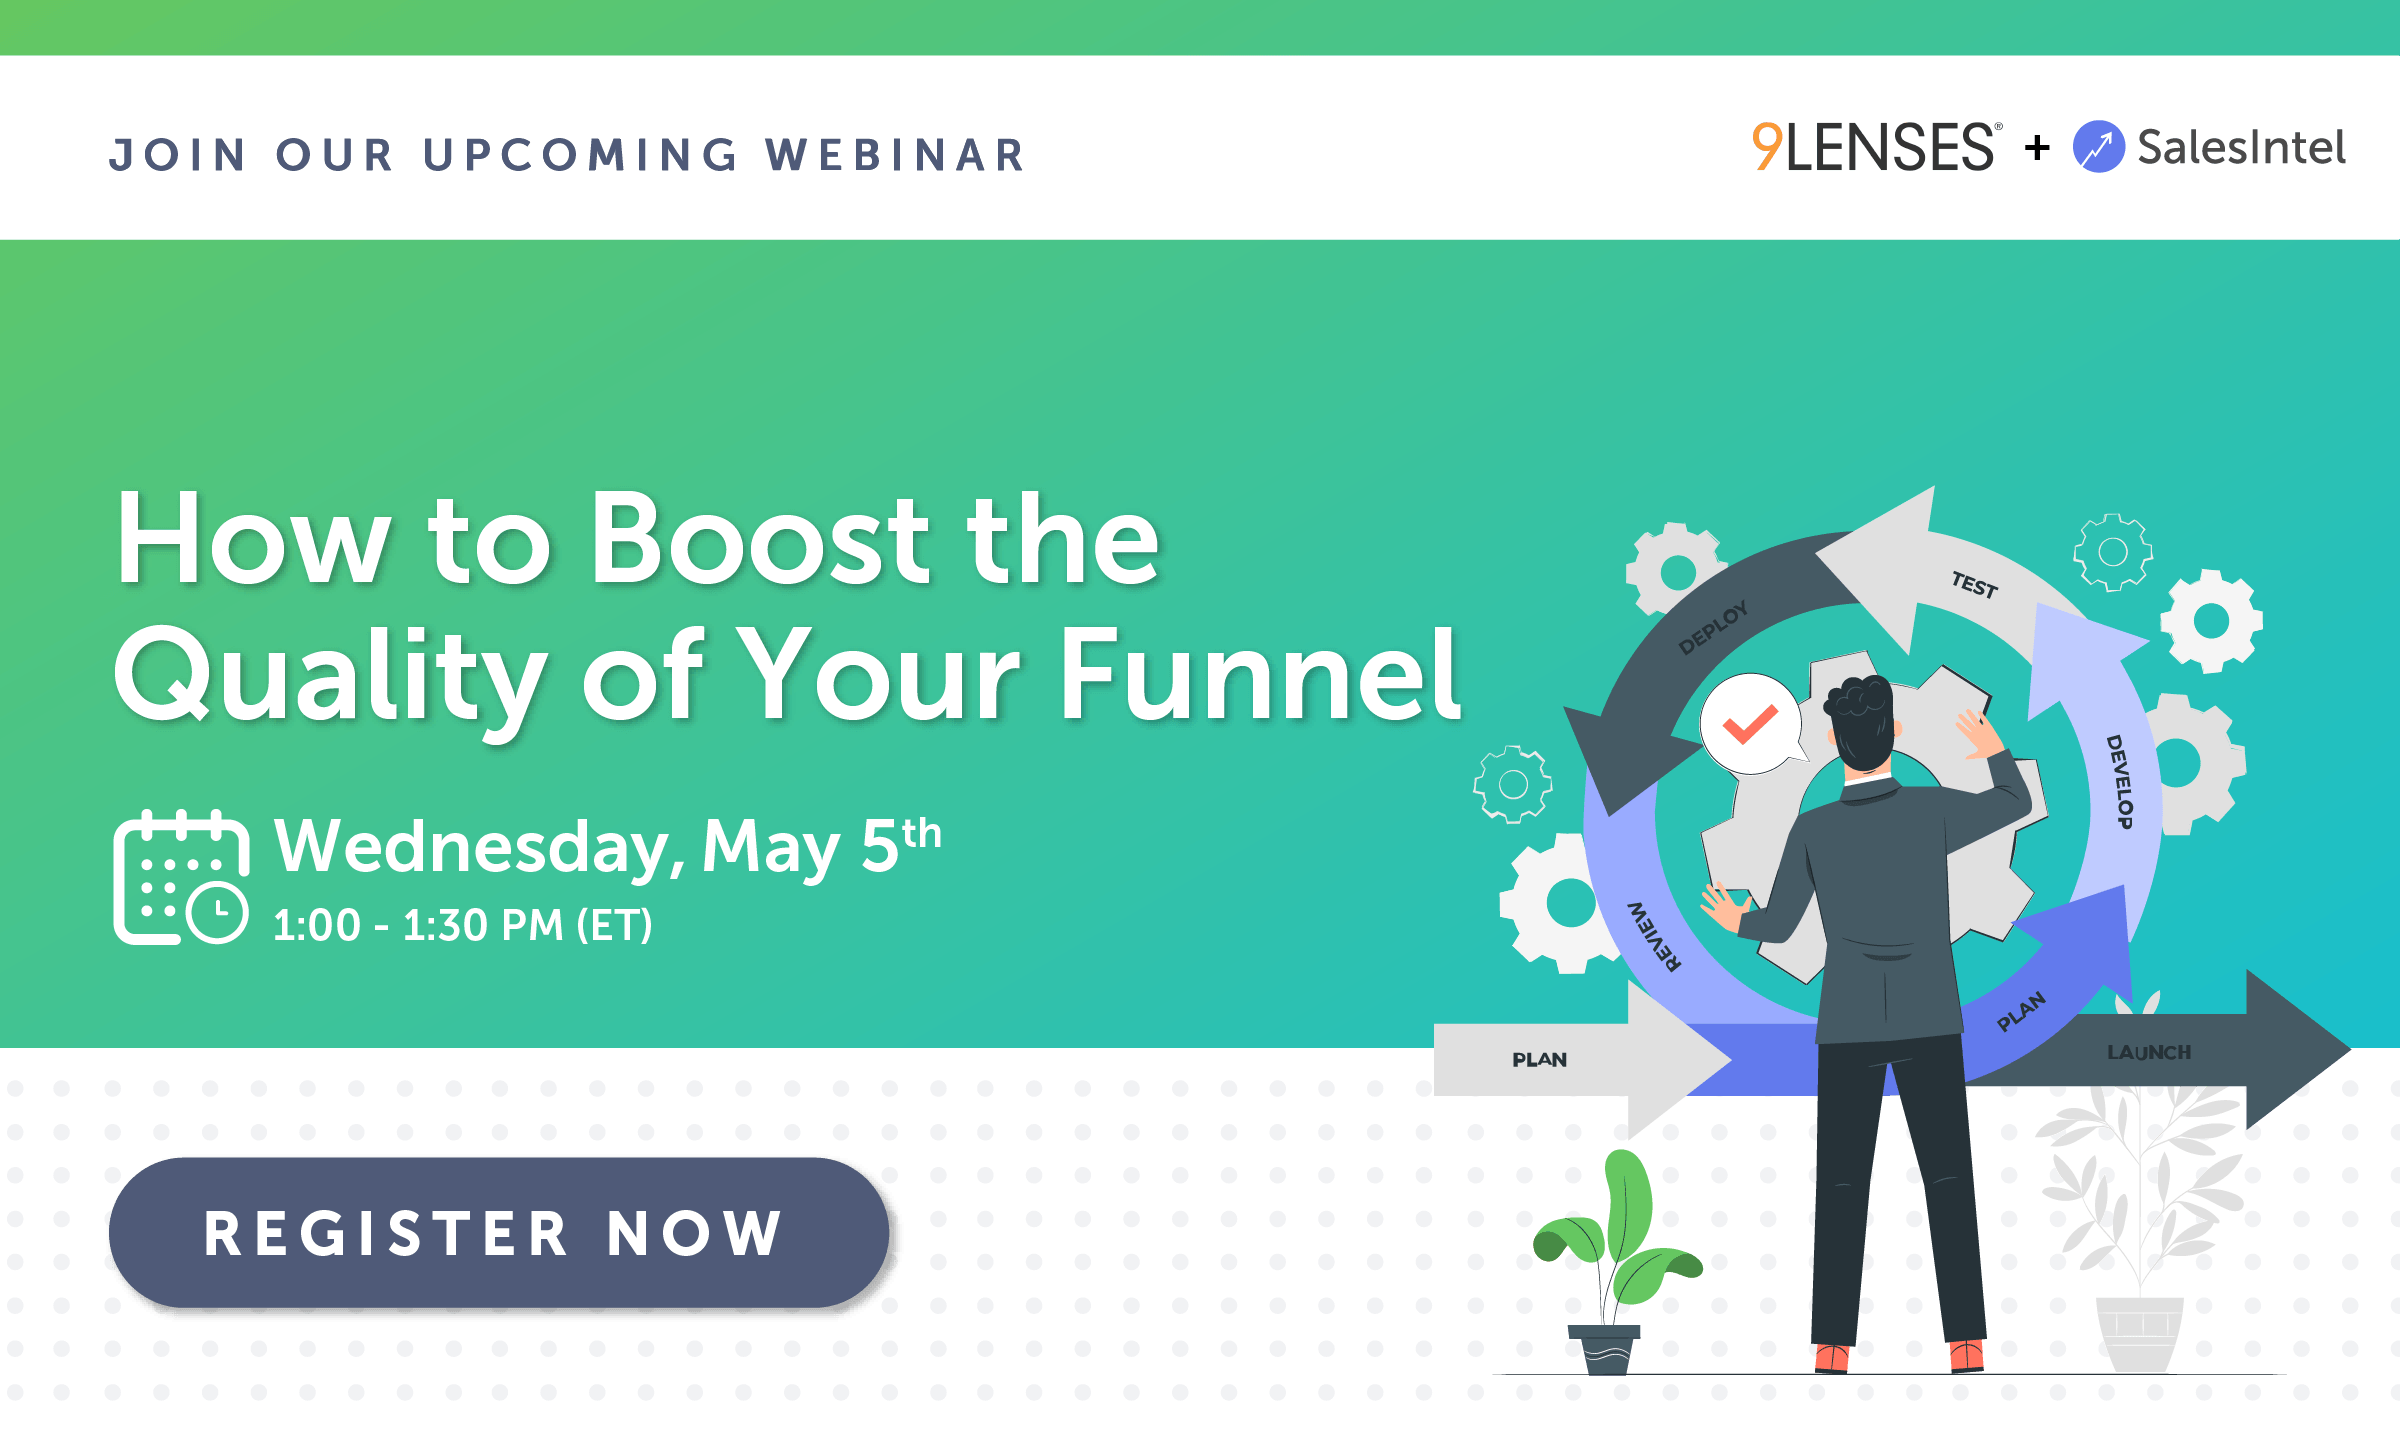 How to Boost the Quality of your Funnel